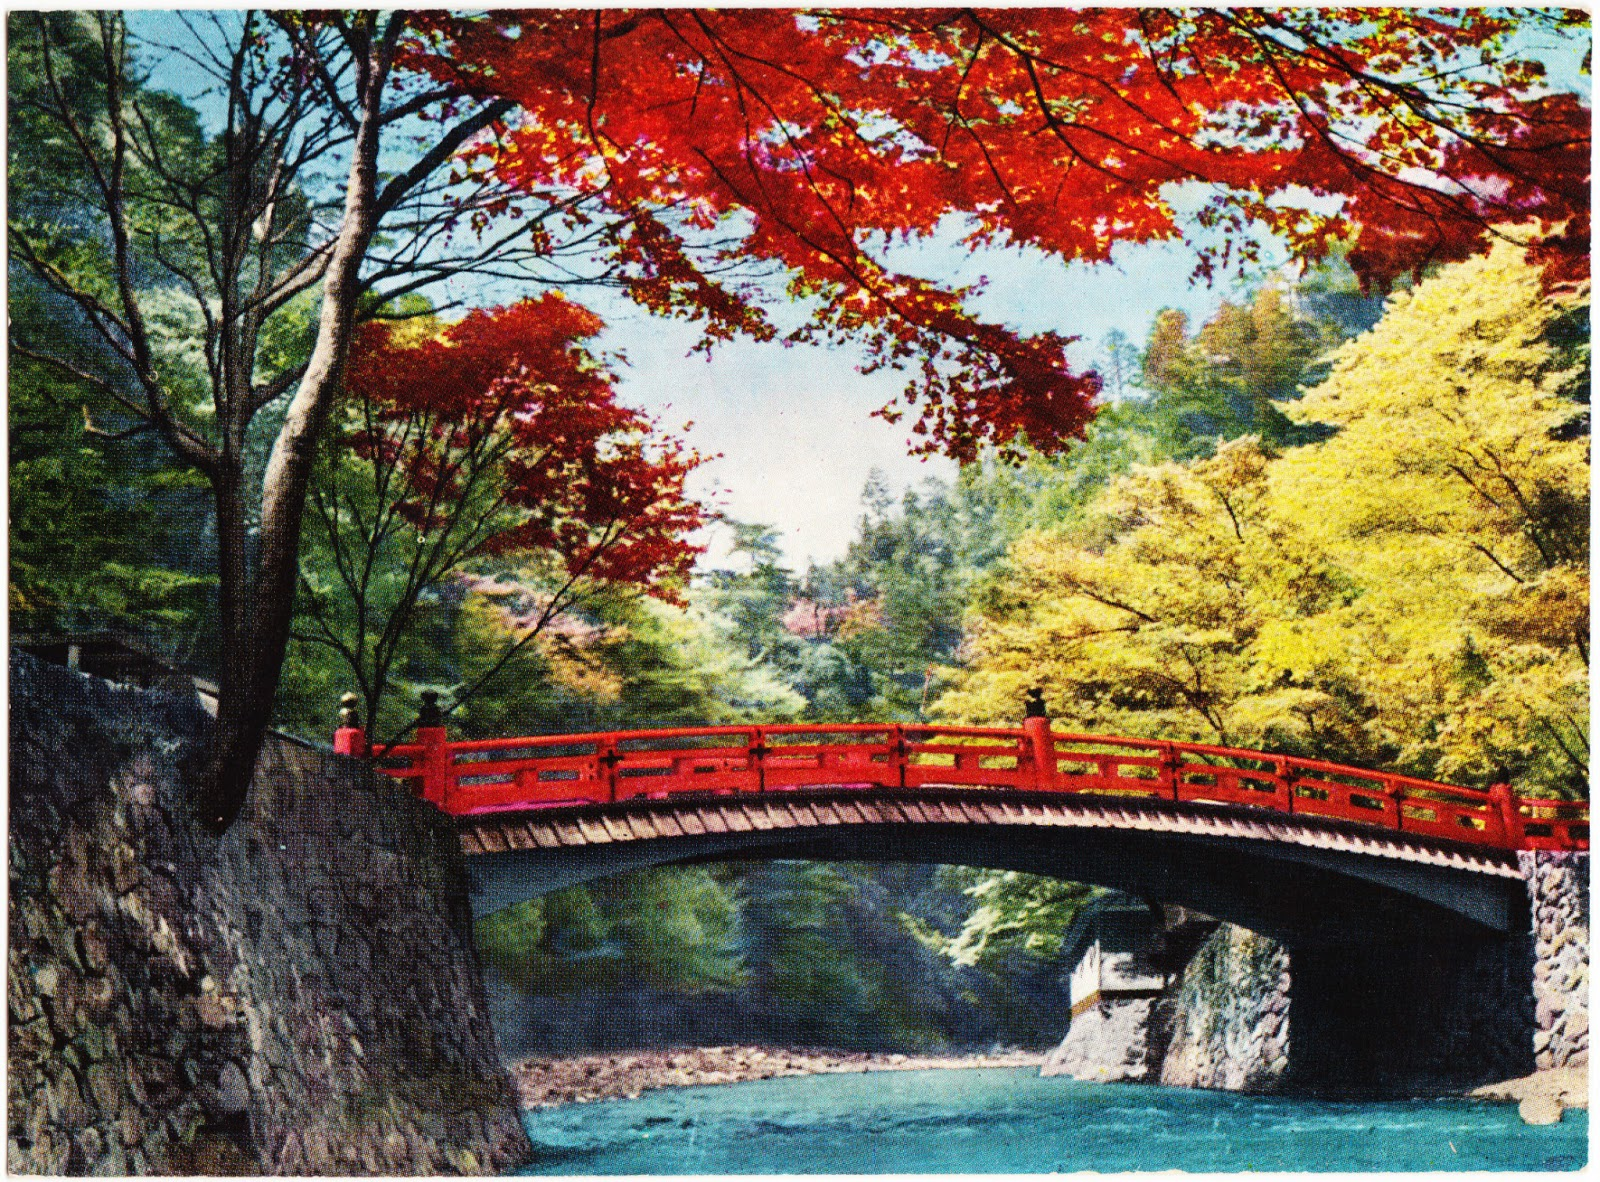 Papergreat 4 21 13 28 Tree Diagram Woodsy Stuff Pinterest Postcard Of Bridge In Takao Japan See More Postcards From Here